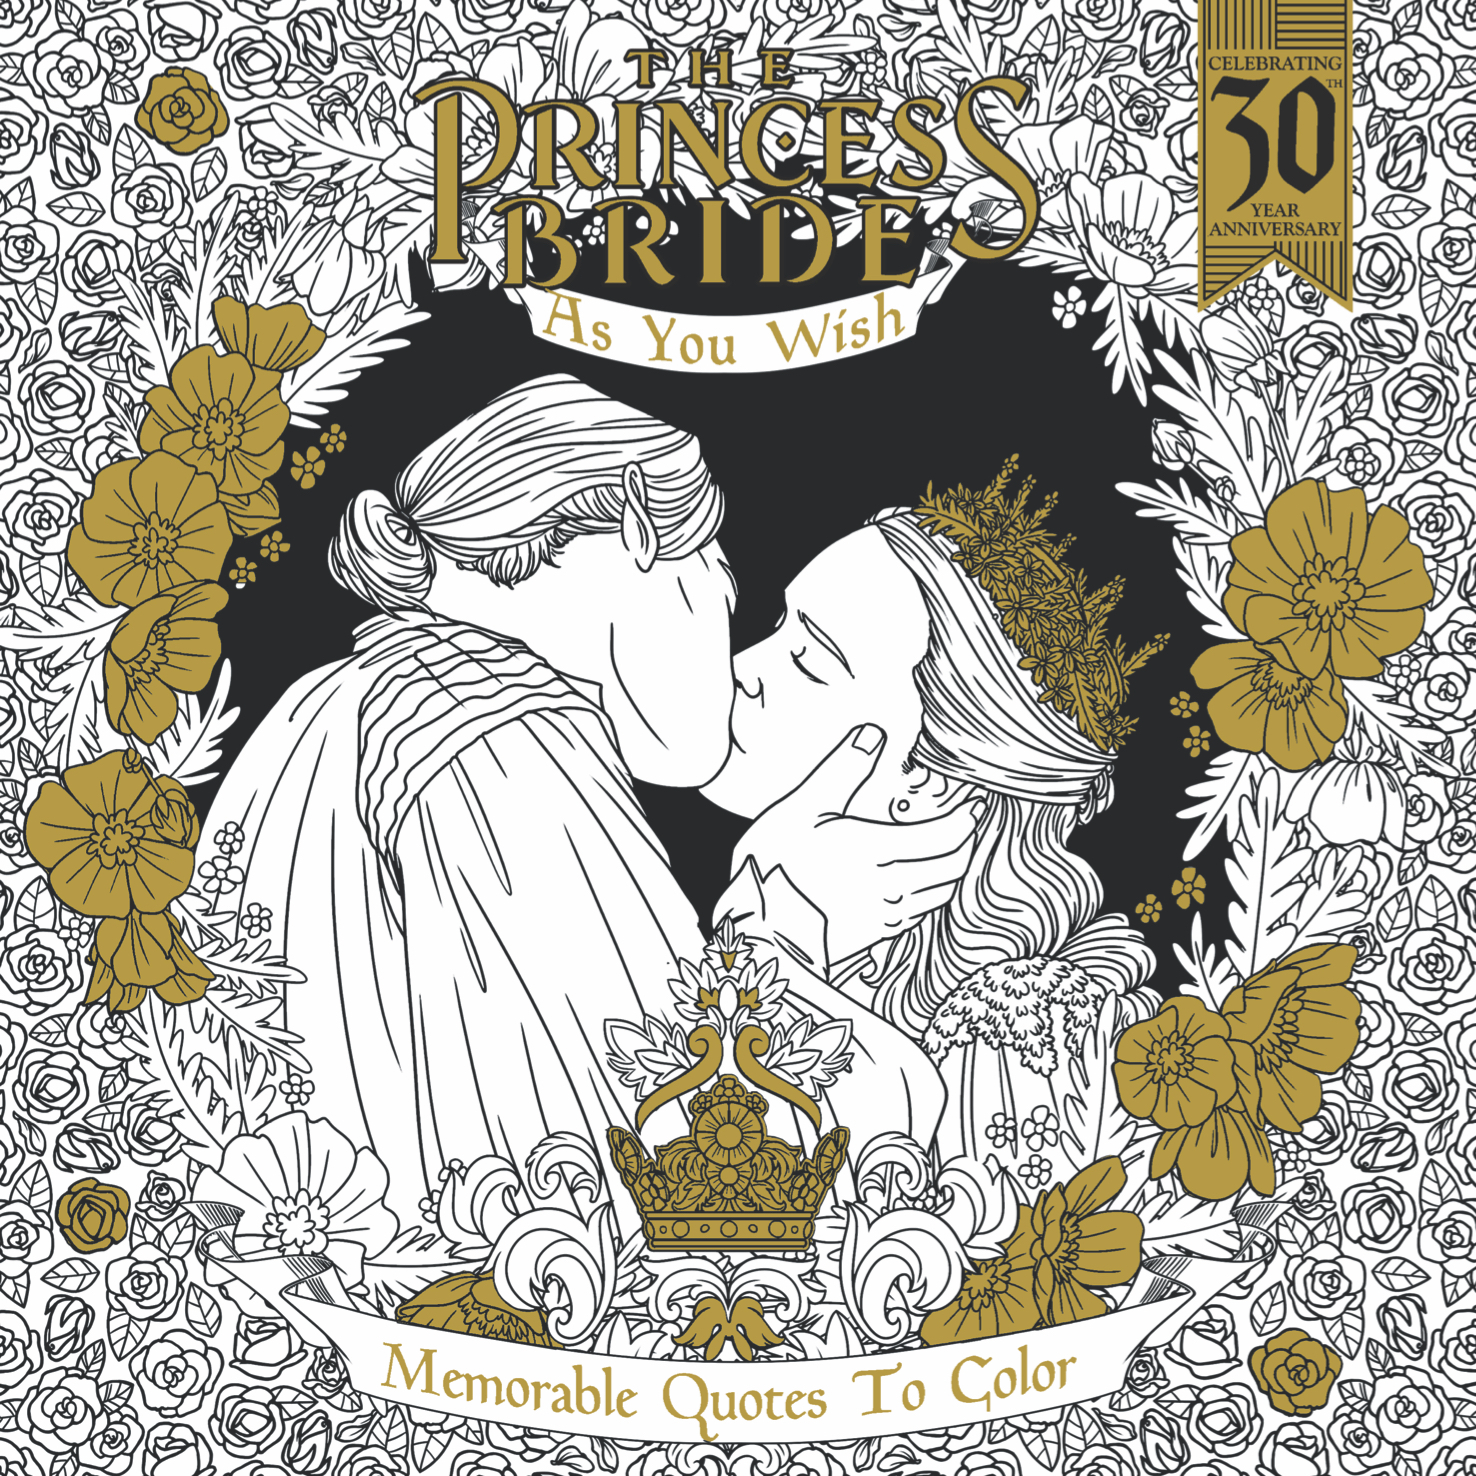 PRINCESS BRIDE AS YOU WISH MEMORABLE QUOTES TO COLOR TP